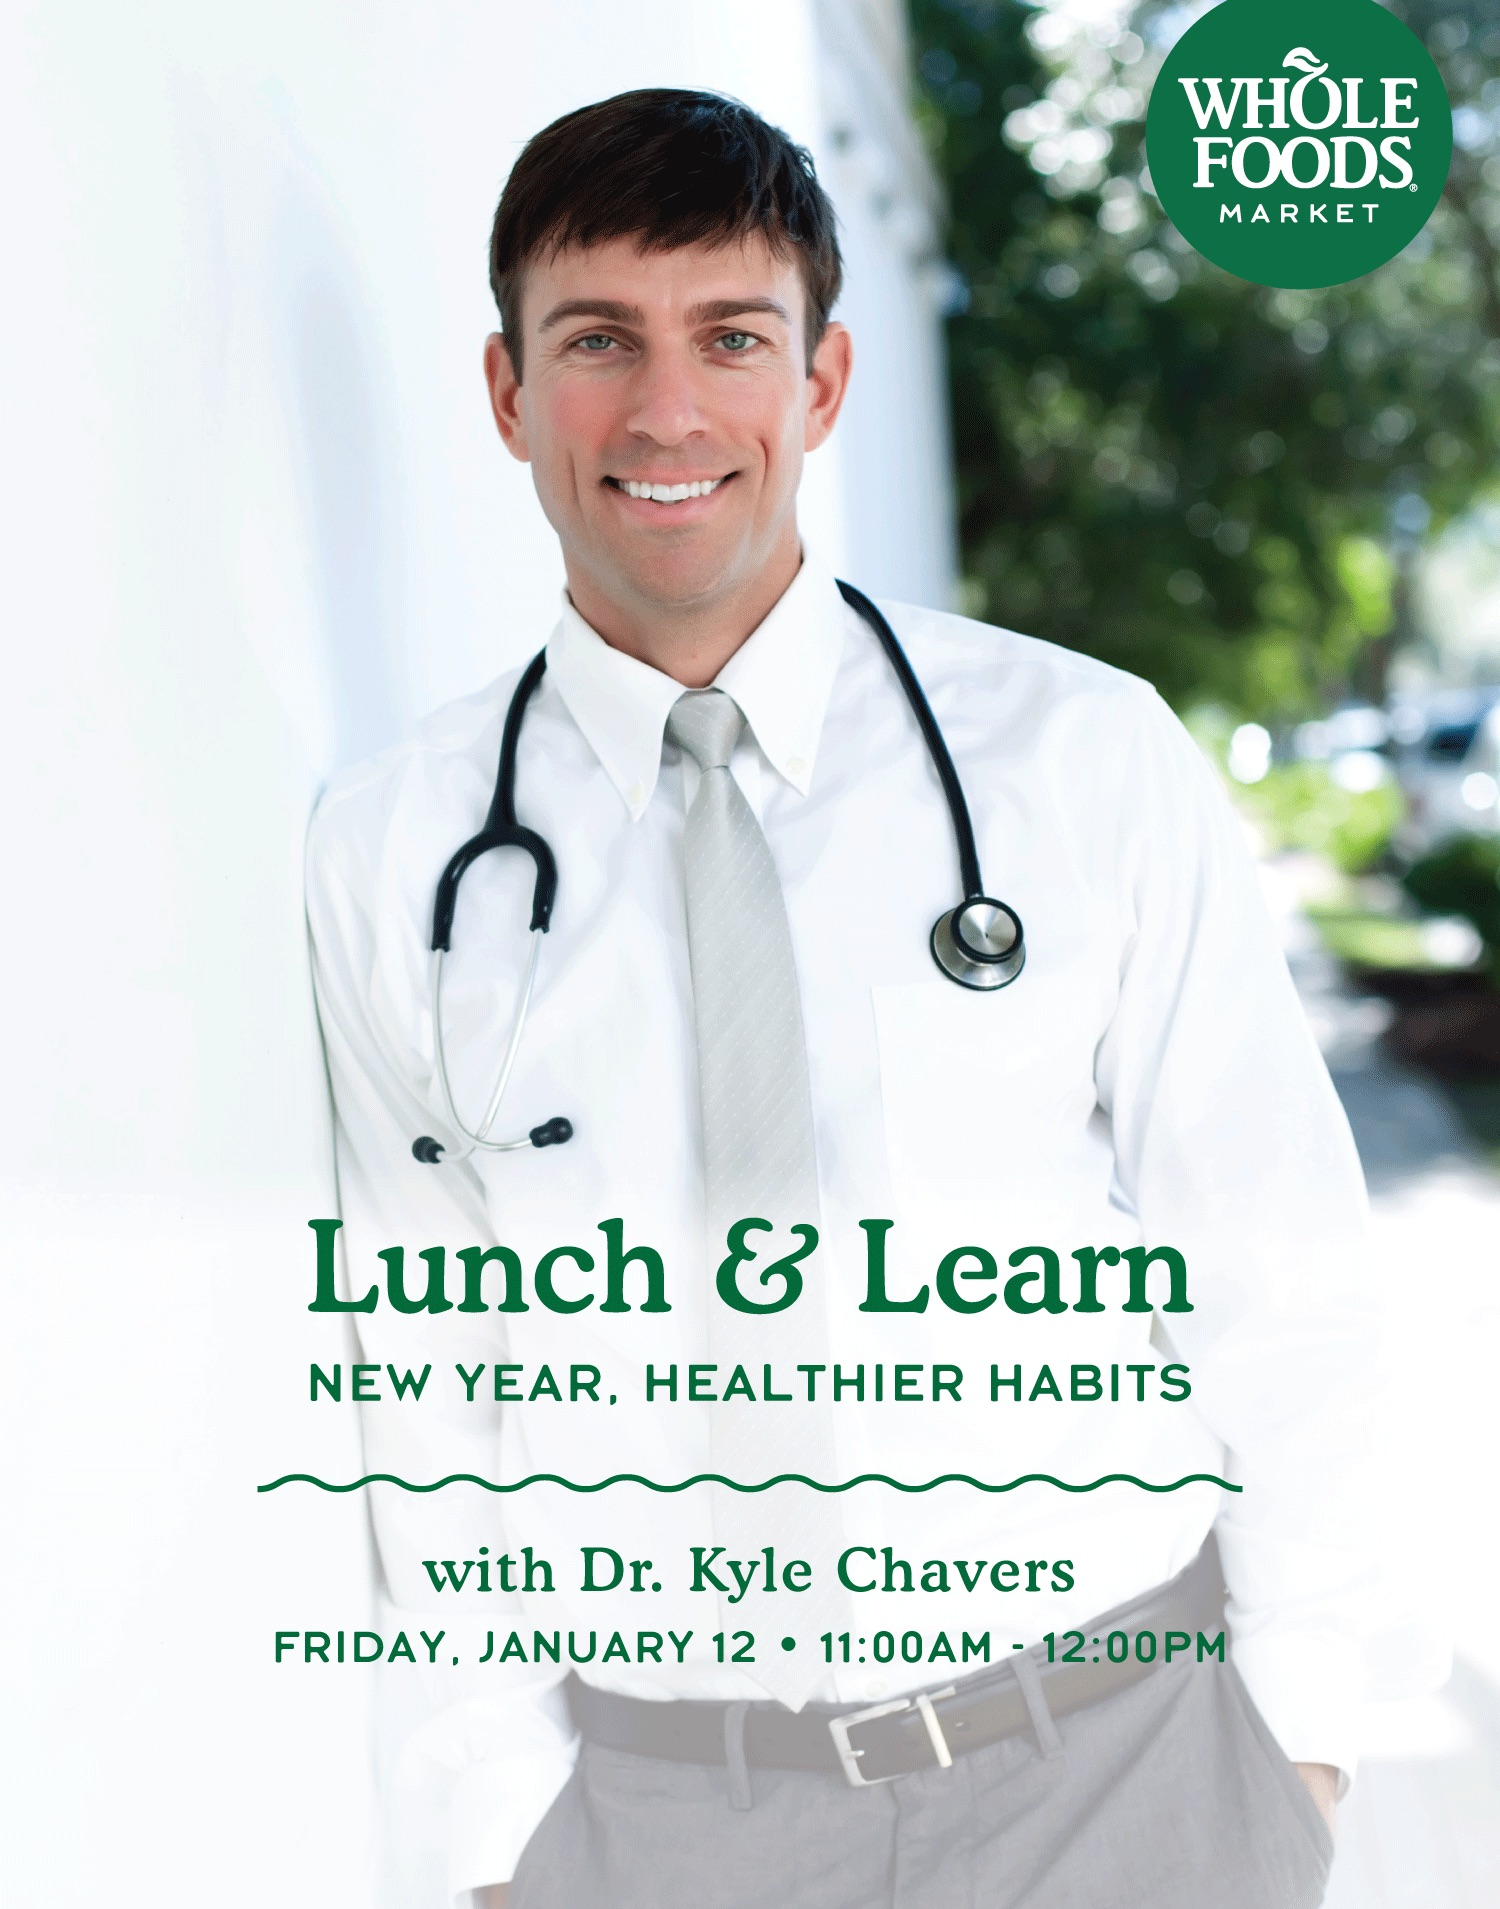 Whole Foods Lunch and Learn flyer.jpg